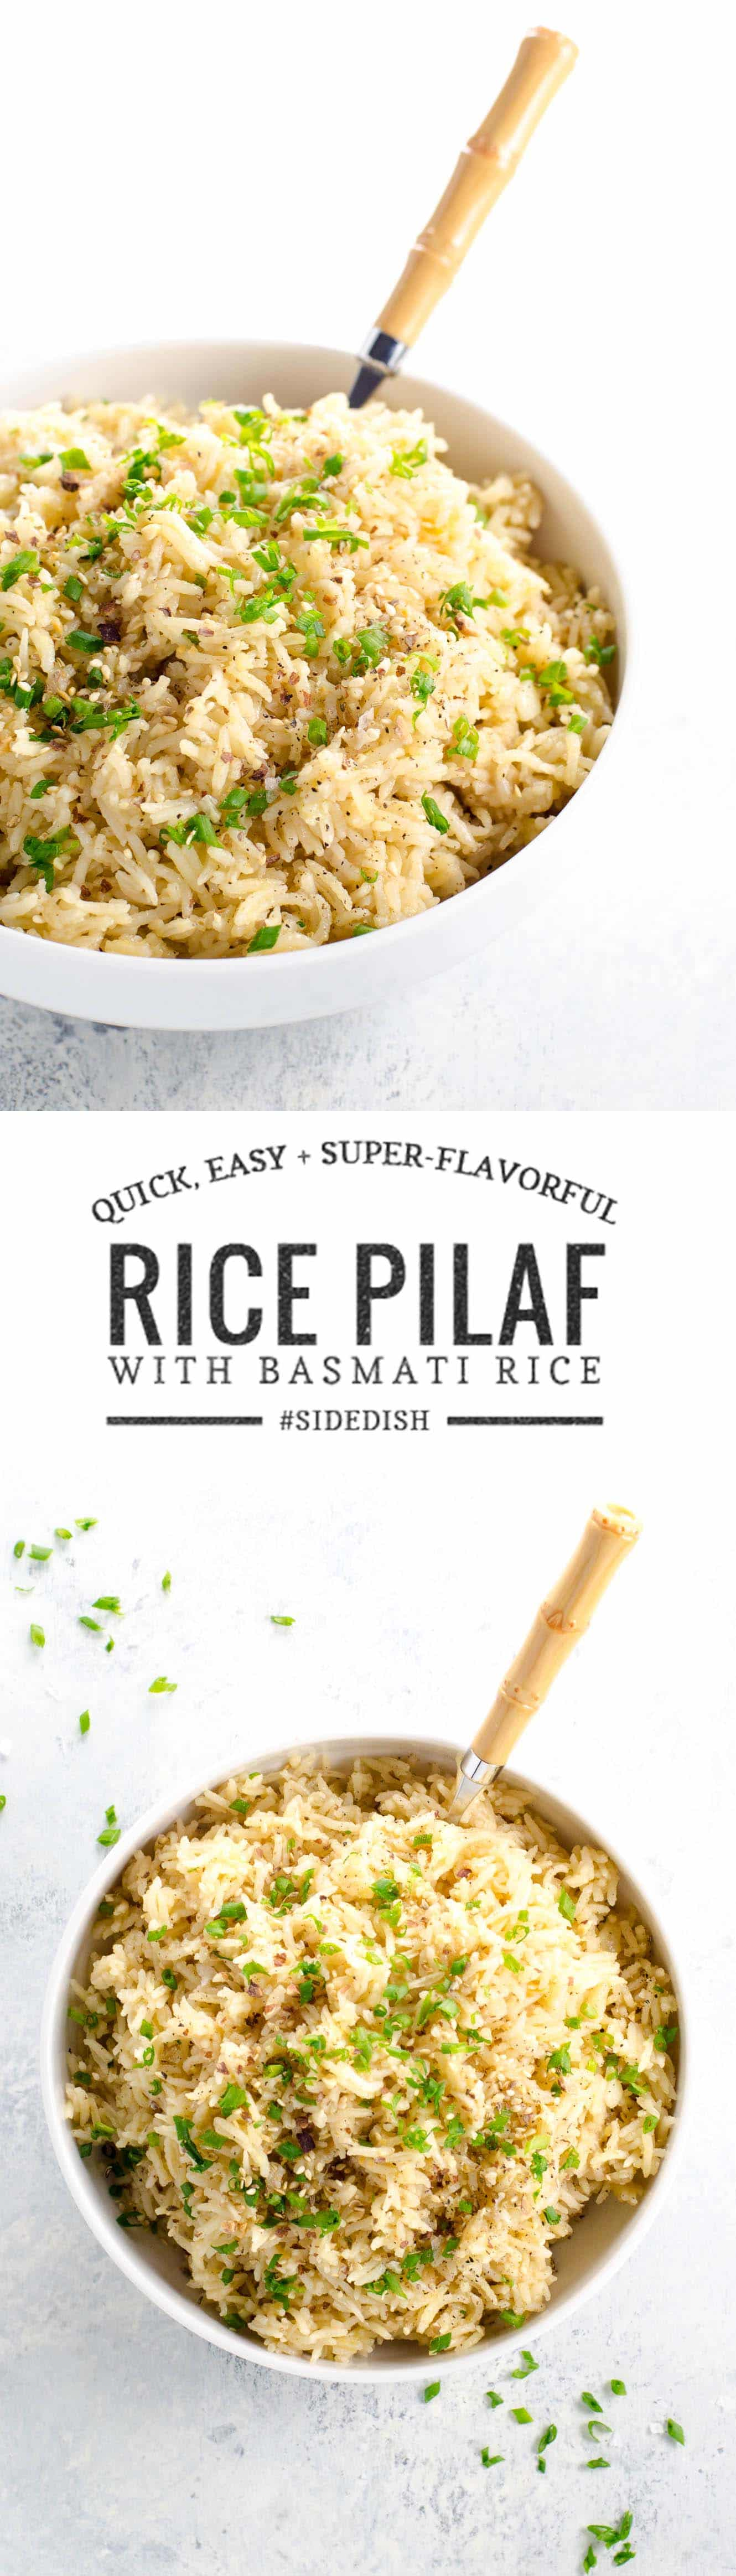 This quick, easy and super-flavorful rice pilaf is made with basmati rice. It's a great side dish or bed for a wide variety of meals and a great basic recipe to have in your repertoire.